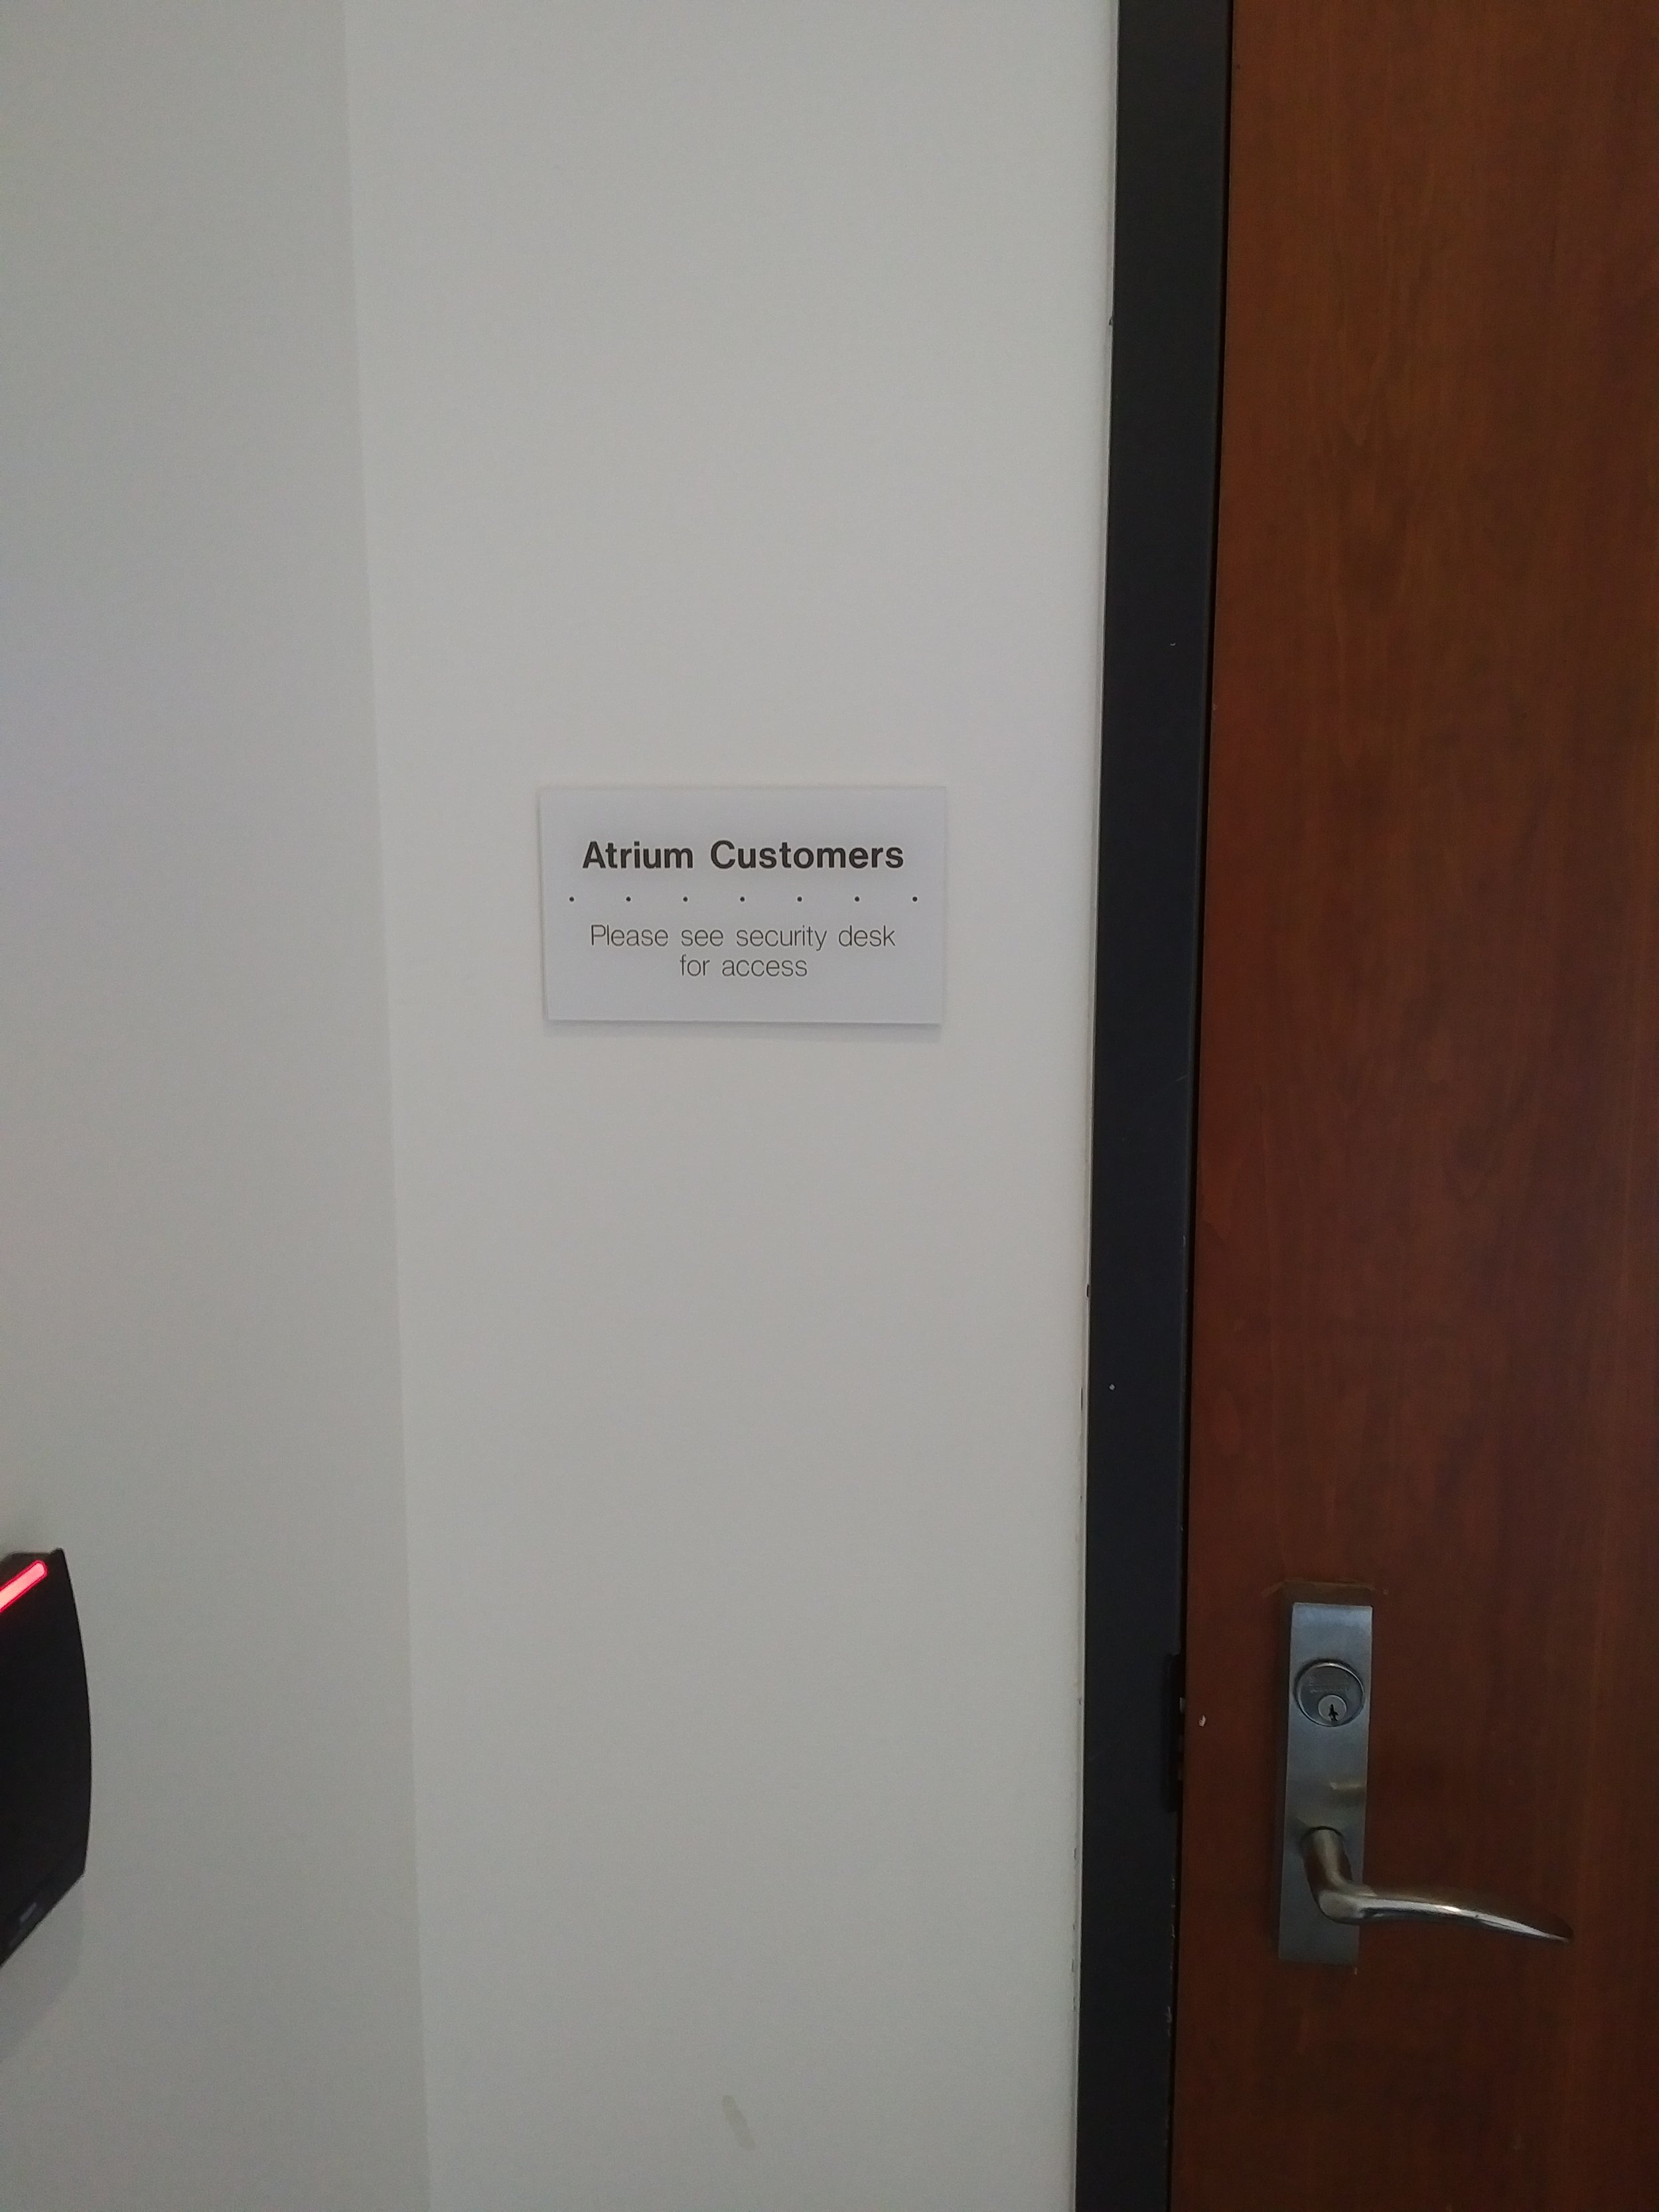 The doors to access the washrooms in the Atrium building were locked in April 2018.